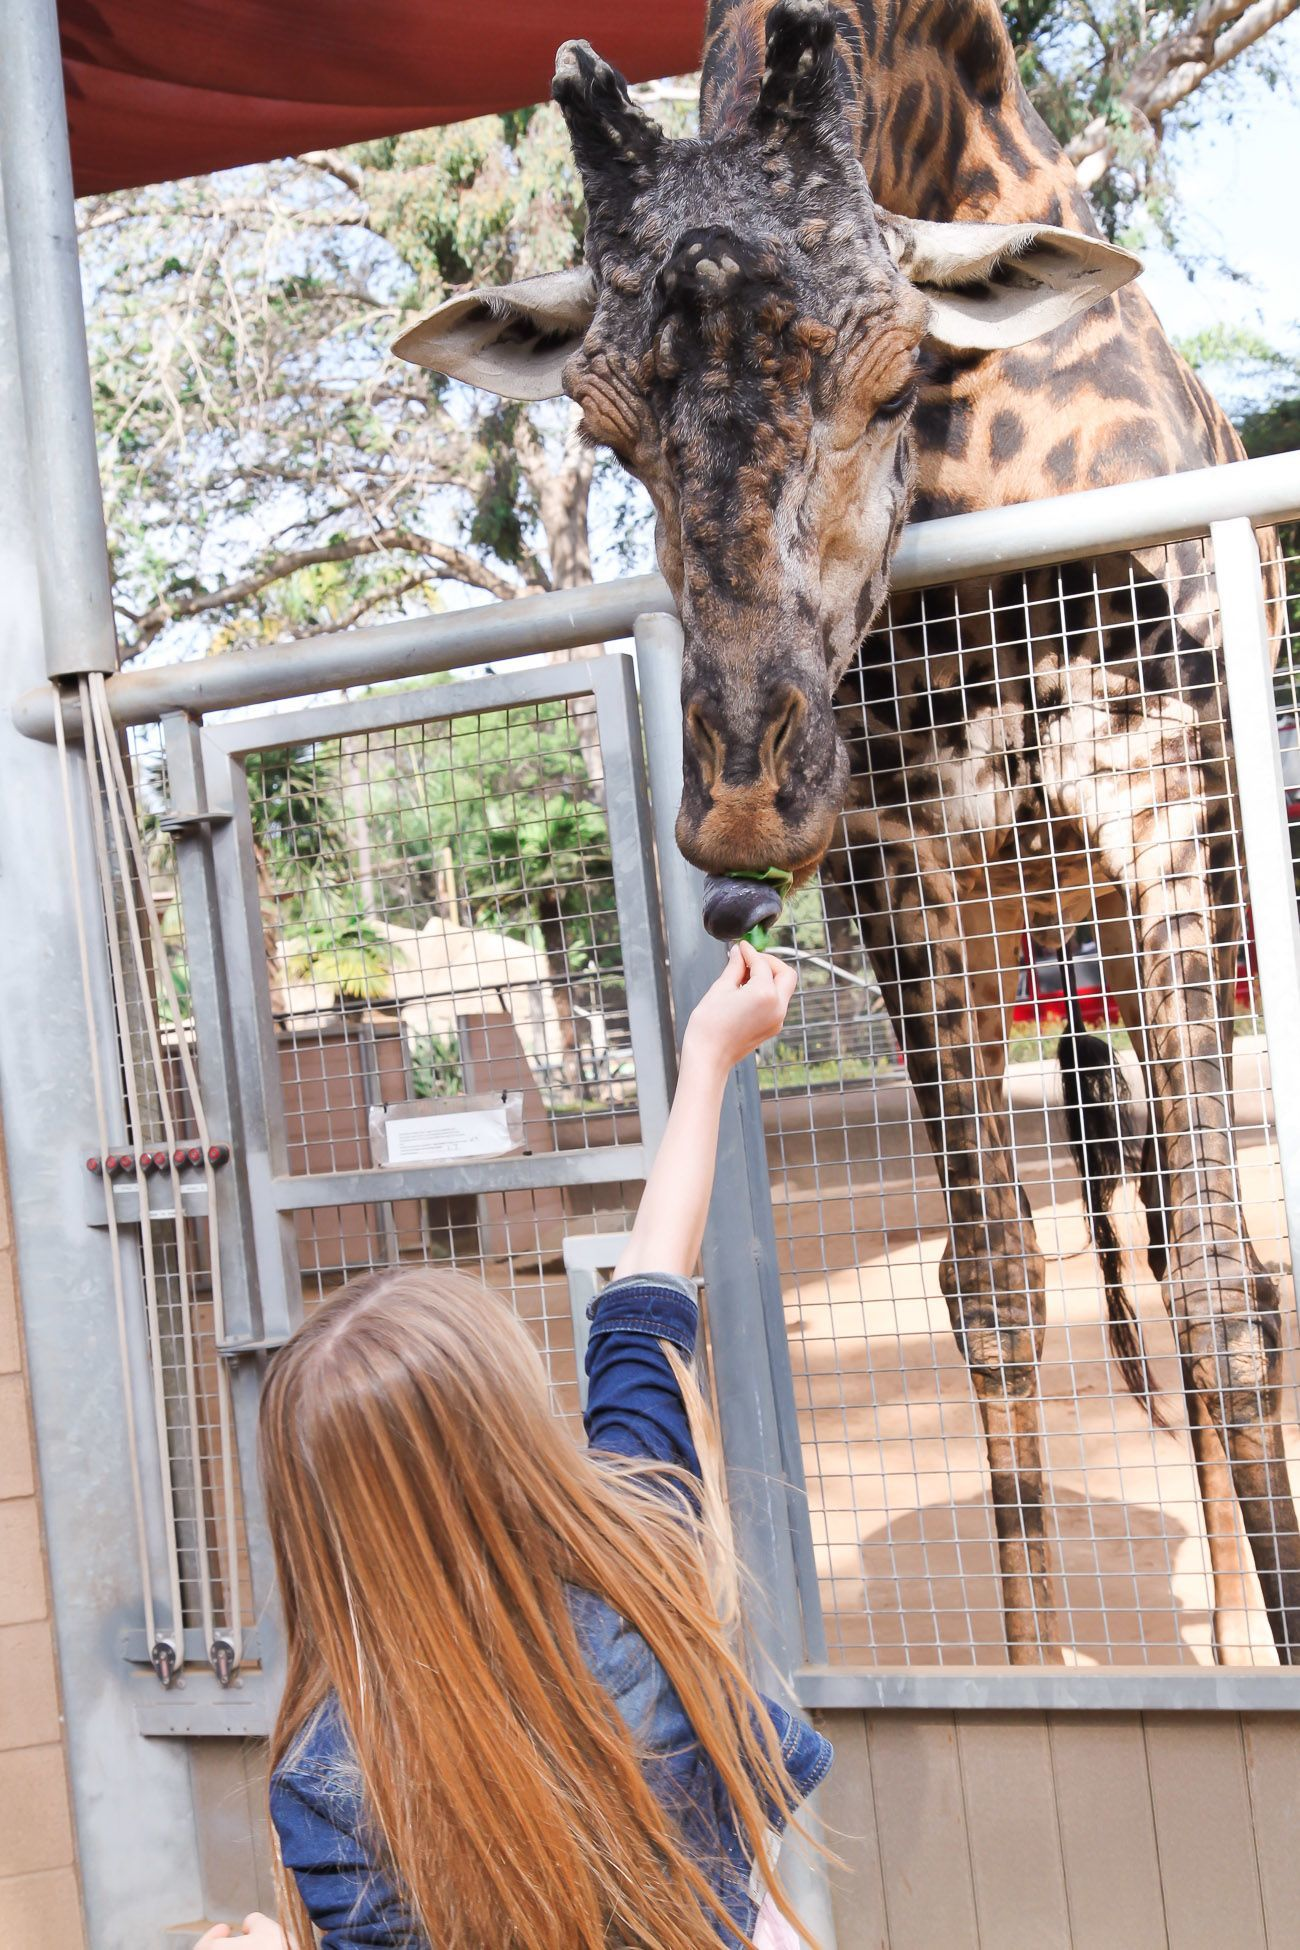 Feeding a giraffe at the San Diego Zoo